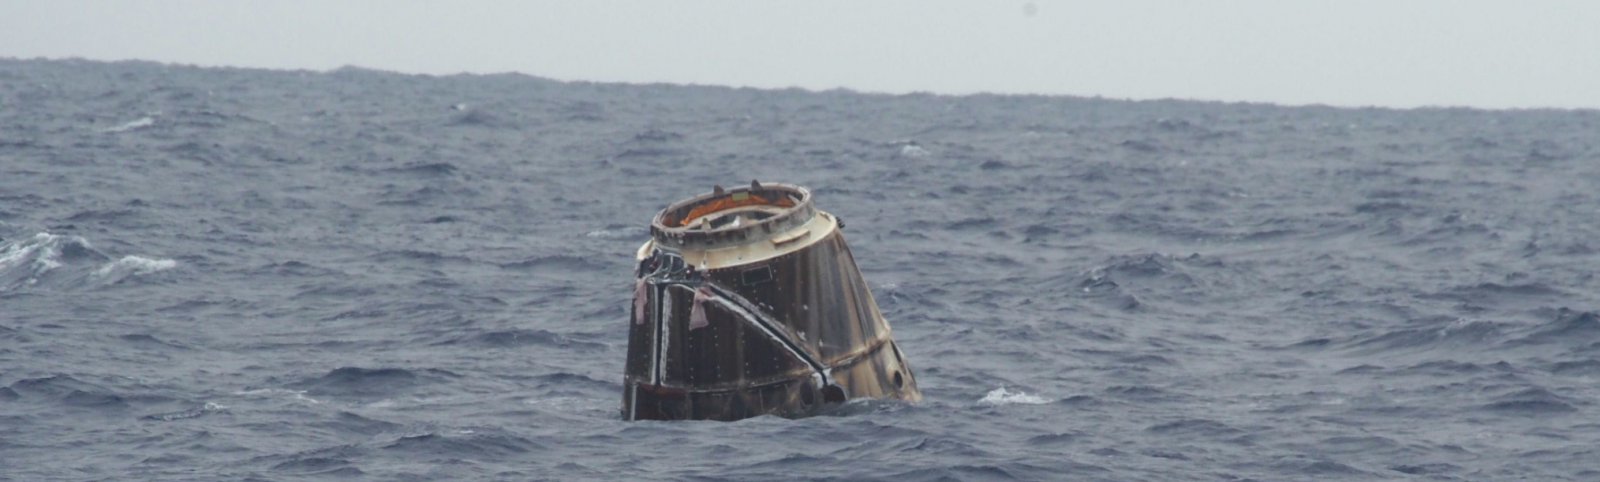 File photo of SpaceX's Dragon spacecraft as it floats in the Pacific Ocean after its first successful test flight in 2012. Photo Credit: Michael Altenhofen / SpaceX